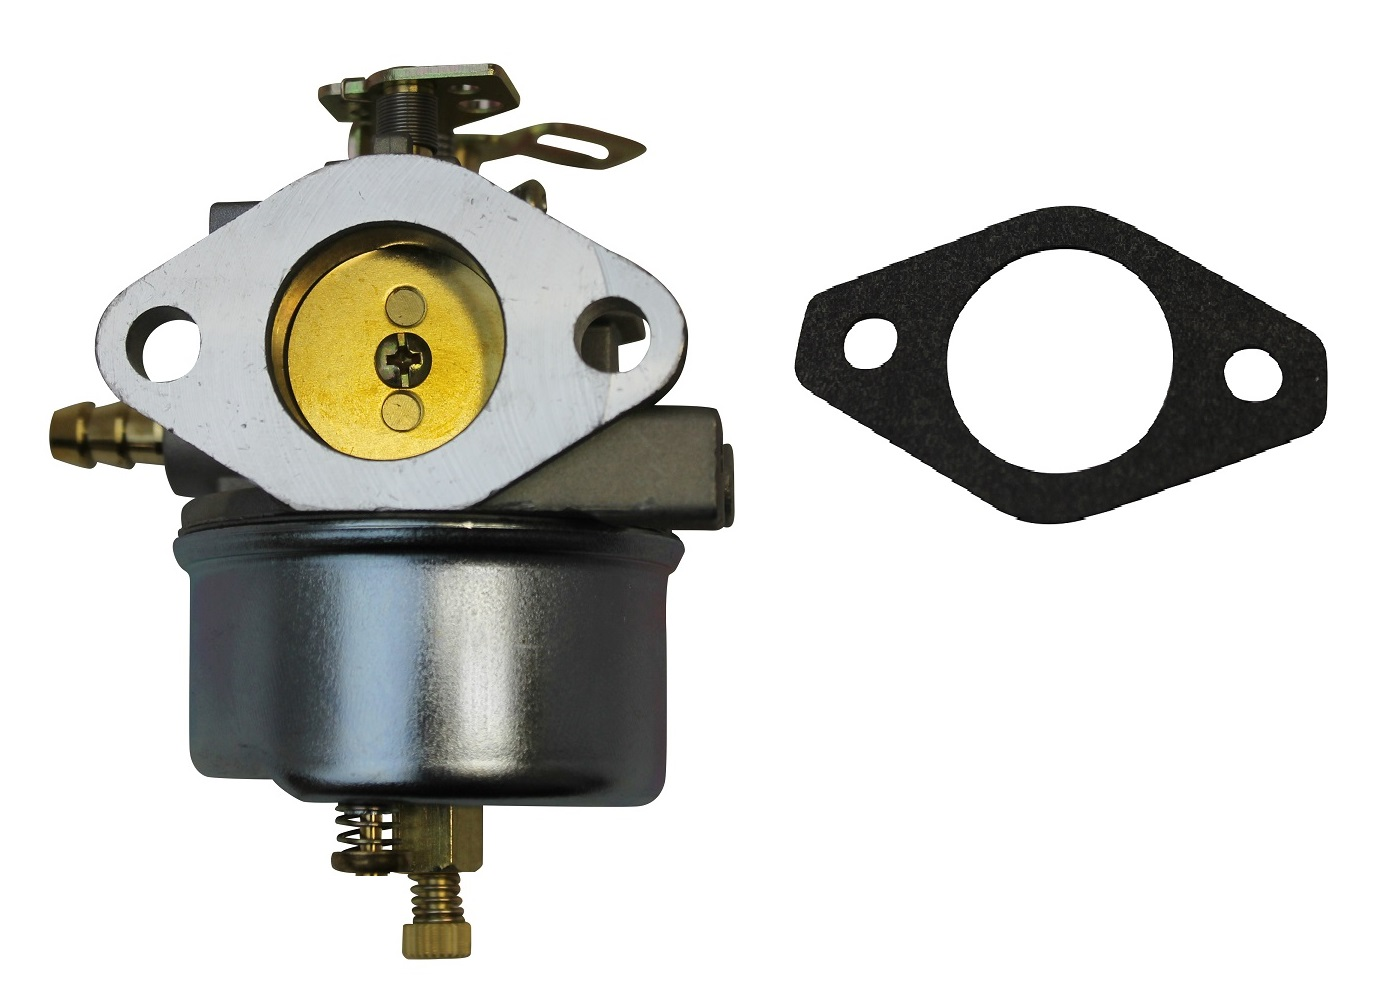 Adjustable Carburetor Tecumseh HMSK80 HMSK90 LH318SA LH358SA Snowblower 8hp 9hp